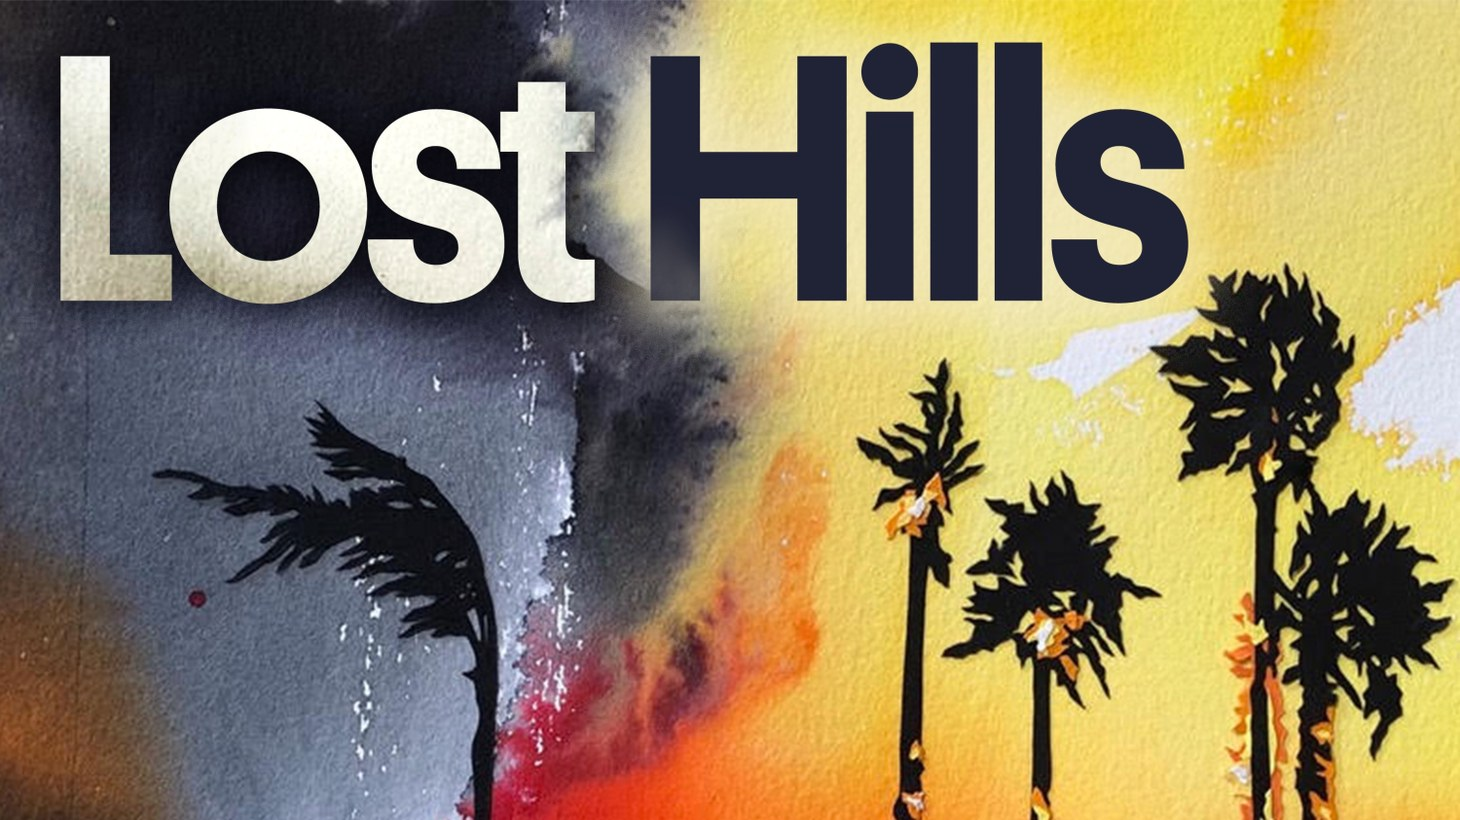 """""""Lost Hills"""" is a new podcast investigating the 2018 murder of Tristan Beaudette and other mysterious shootings around Malibu State Park."""